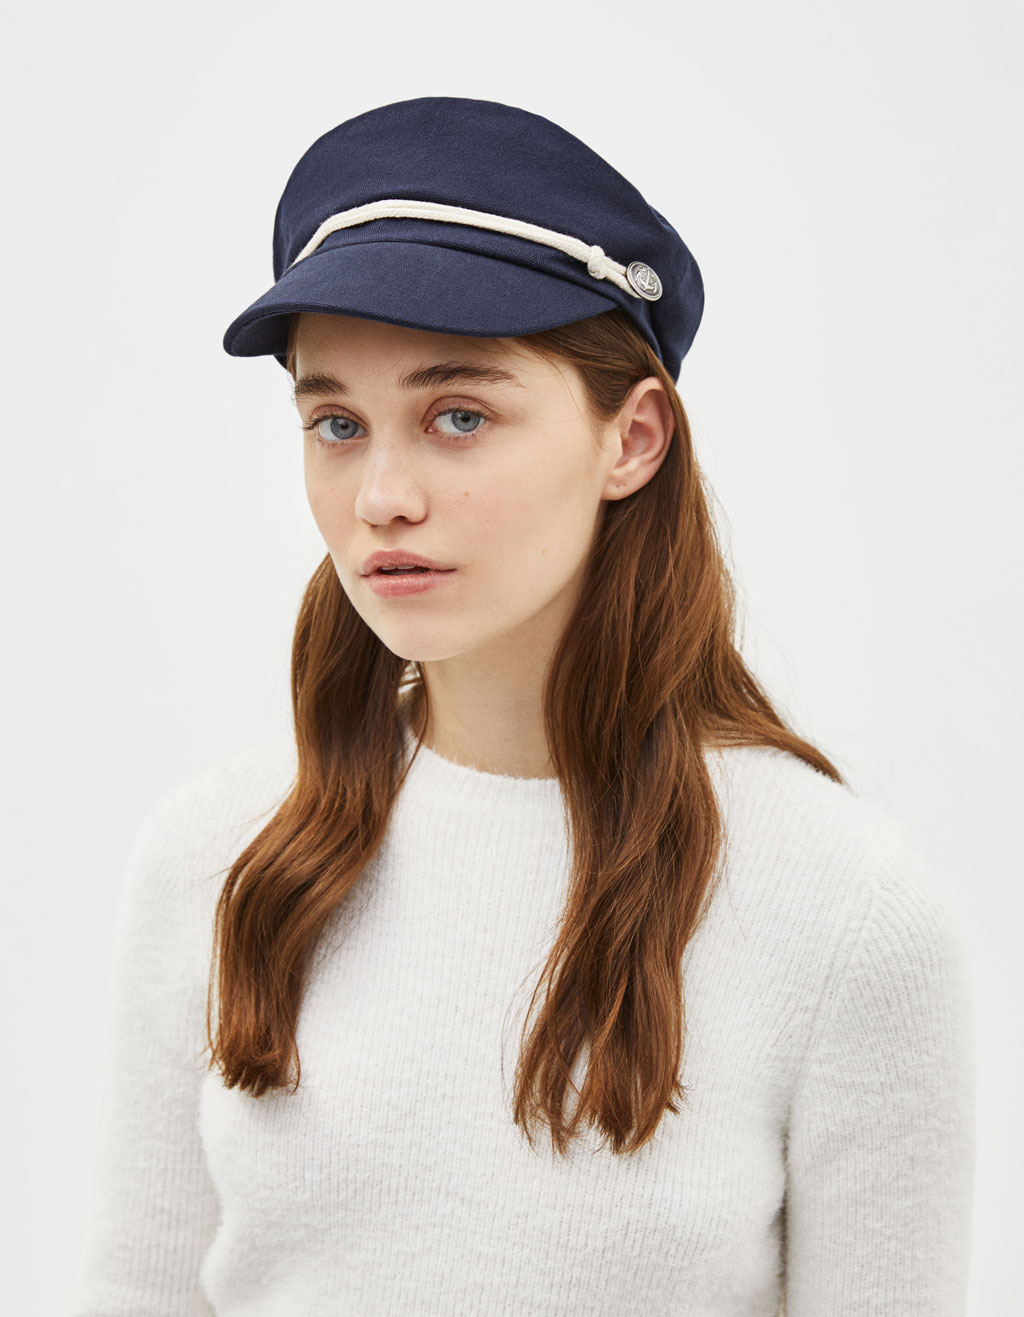 Nautical cap